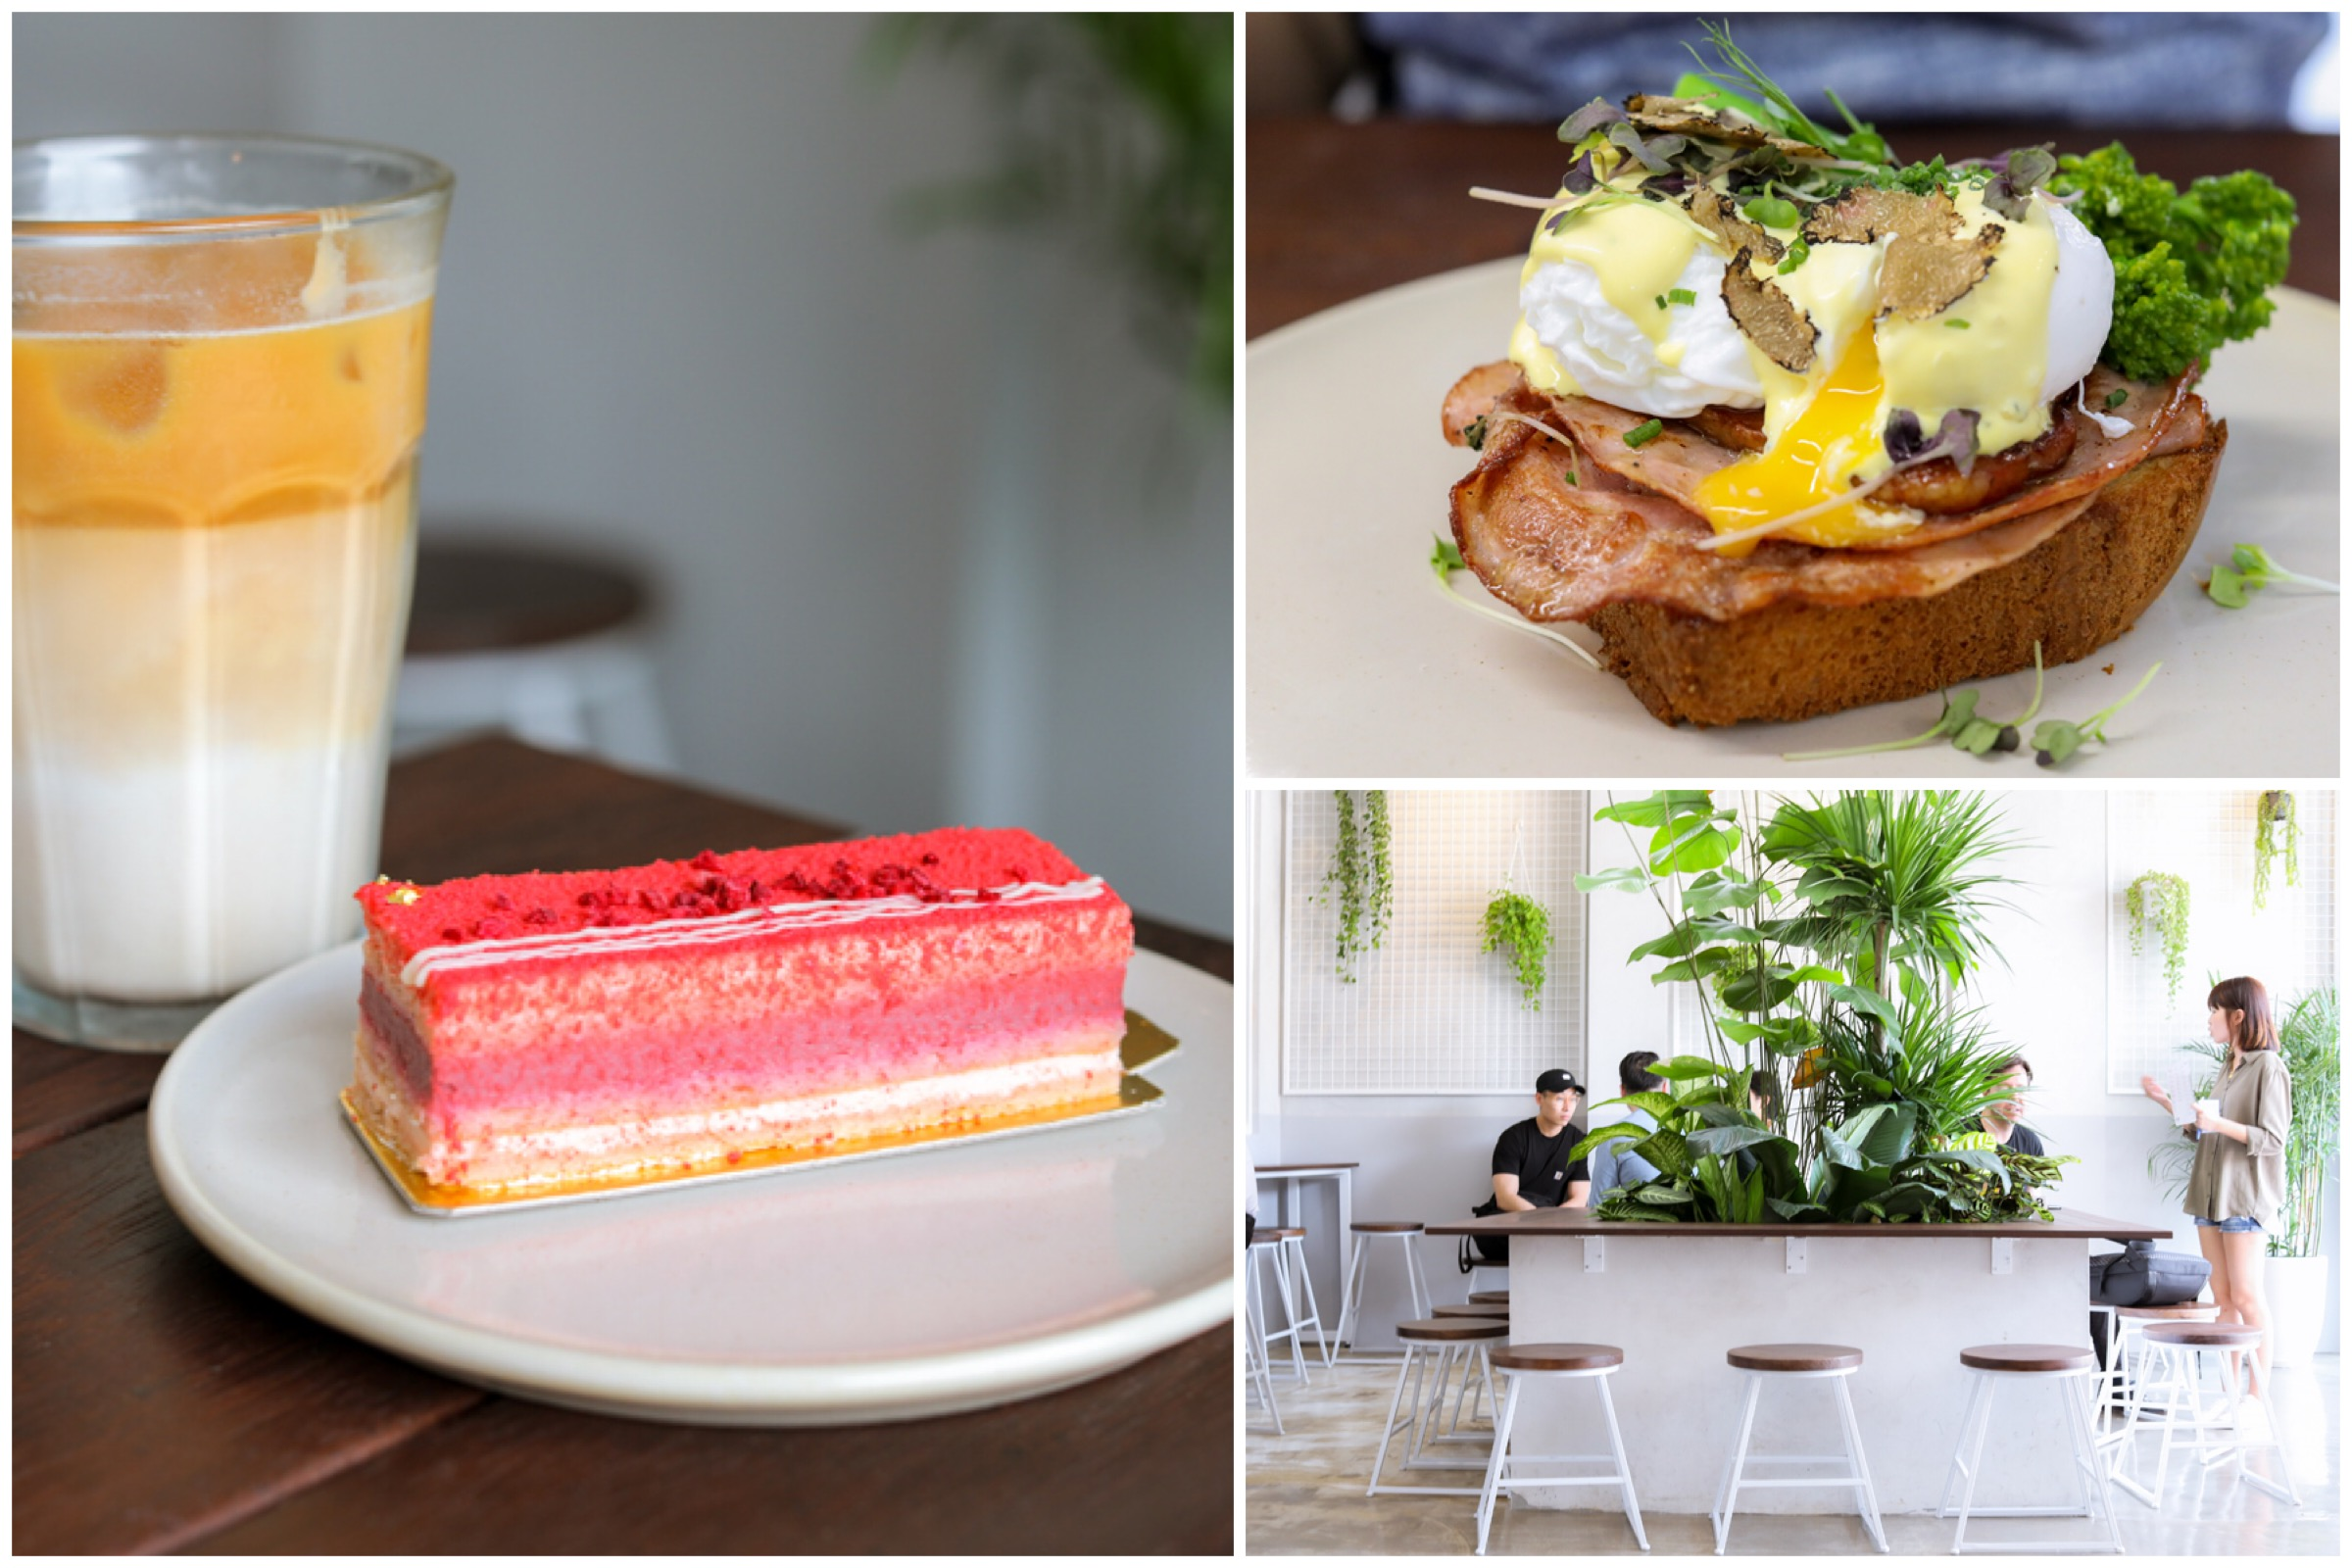 Five Oars Coffee Roasters - Melbourne Inspired Cafe With Loads Of Brunch Items, At Tanjong Pagar